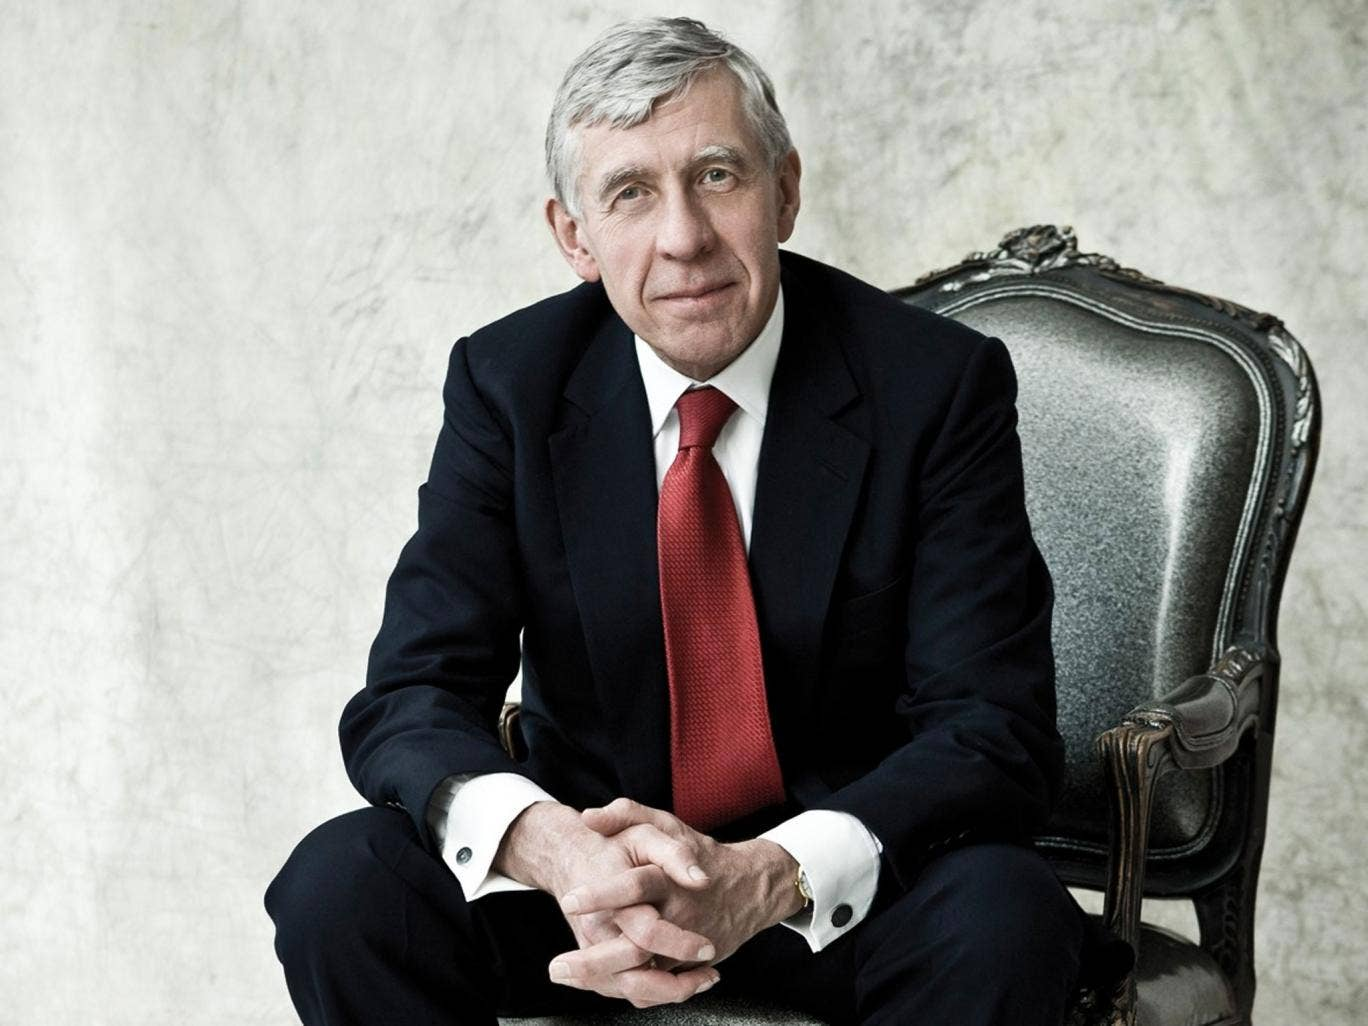 Jack Straw: Served 13 years in the Cabinet and has an ear for an anecdote